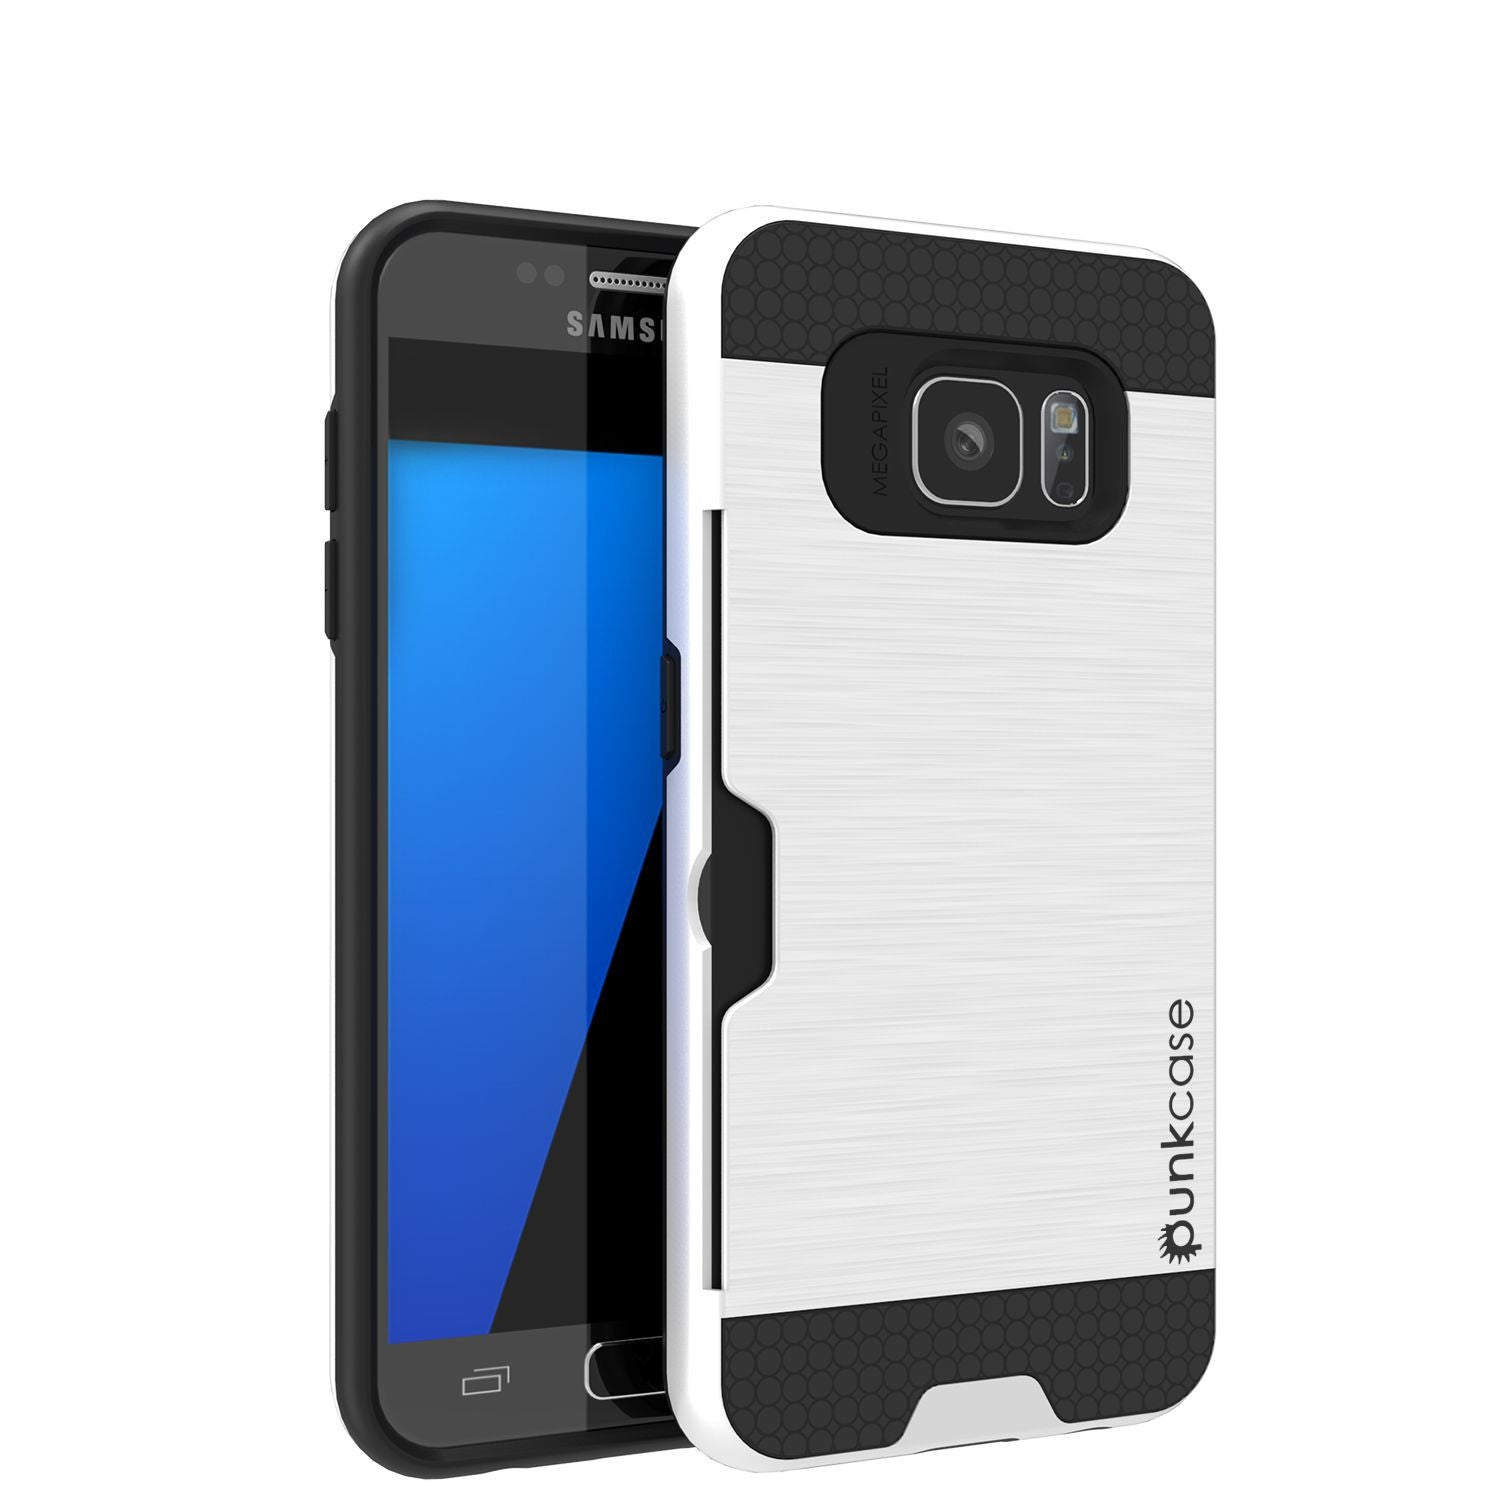 PUNKCASE - Slot Series Slim Armor Soft Case for Samsung S7 Edge | White